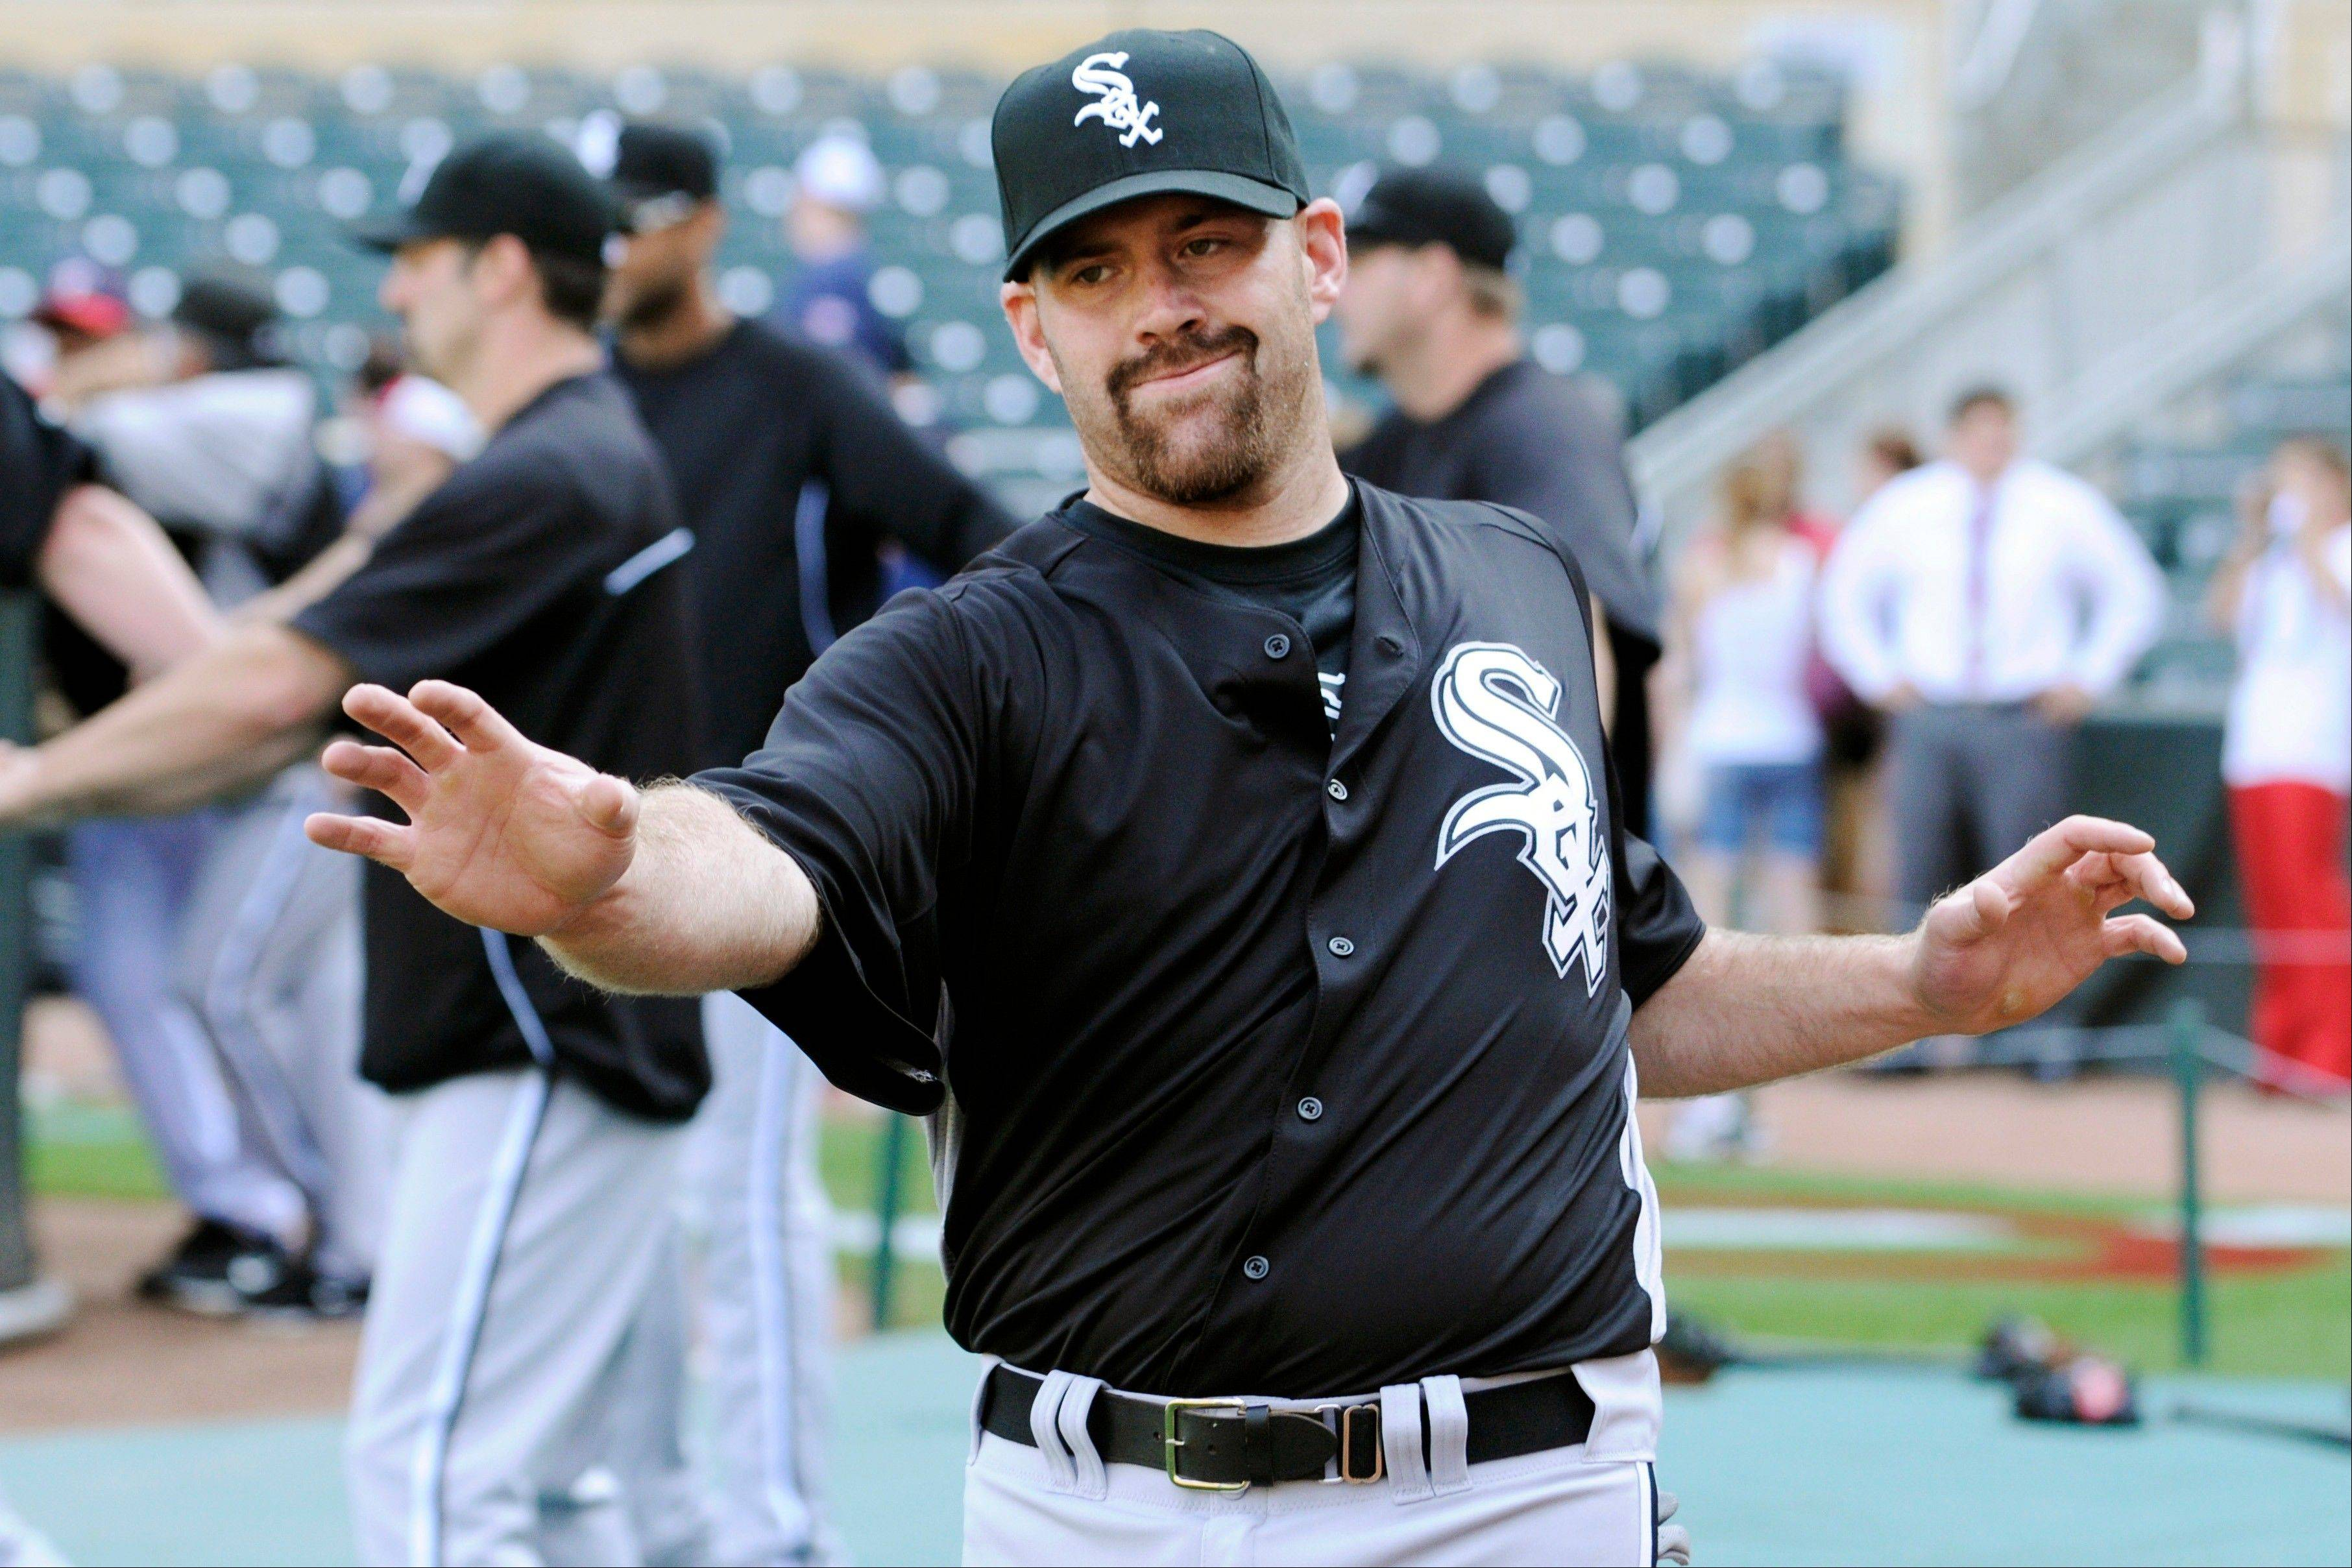 White Sox third baseman Kevin Youkilis went 1-for-4 in his debut on the South Side.